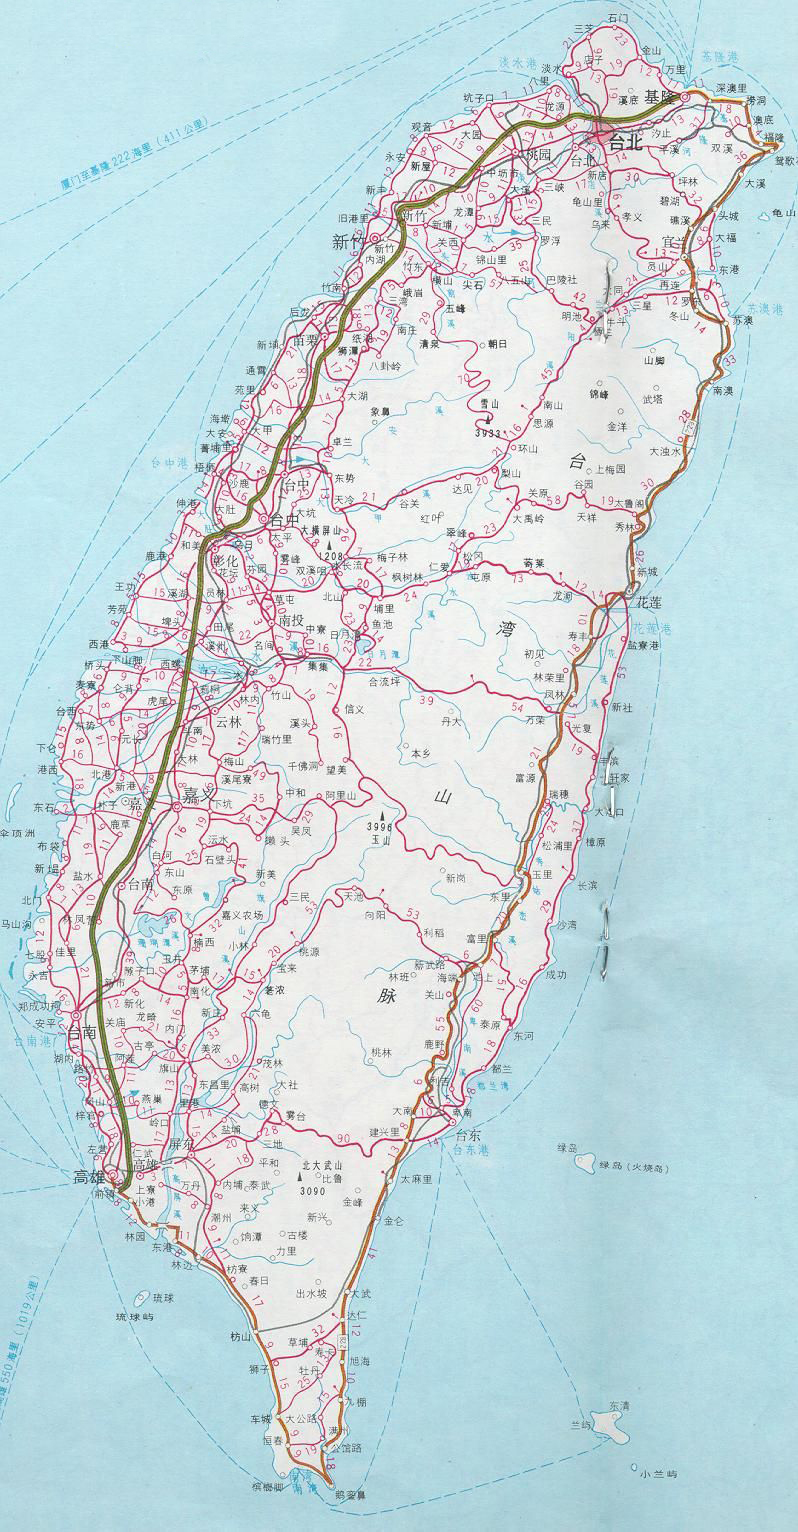 Taiwan China Map.Taiwan Map Map Of Taiwan Taiwan China Map Taiwan City Map